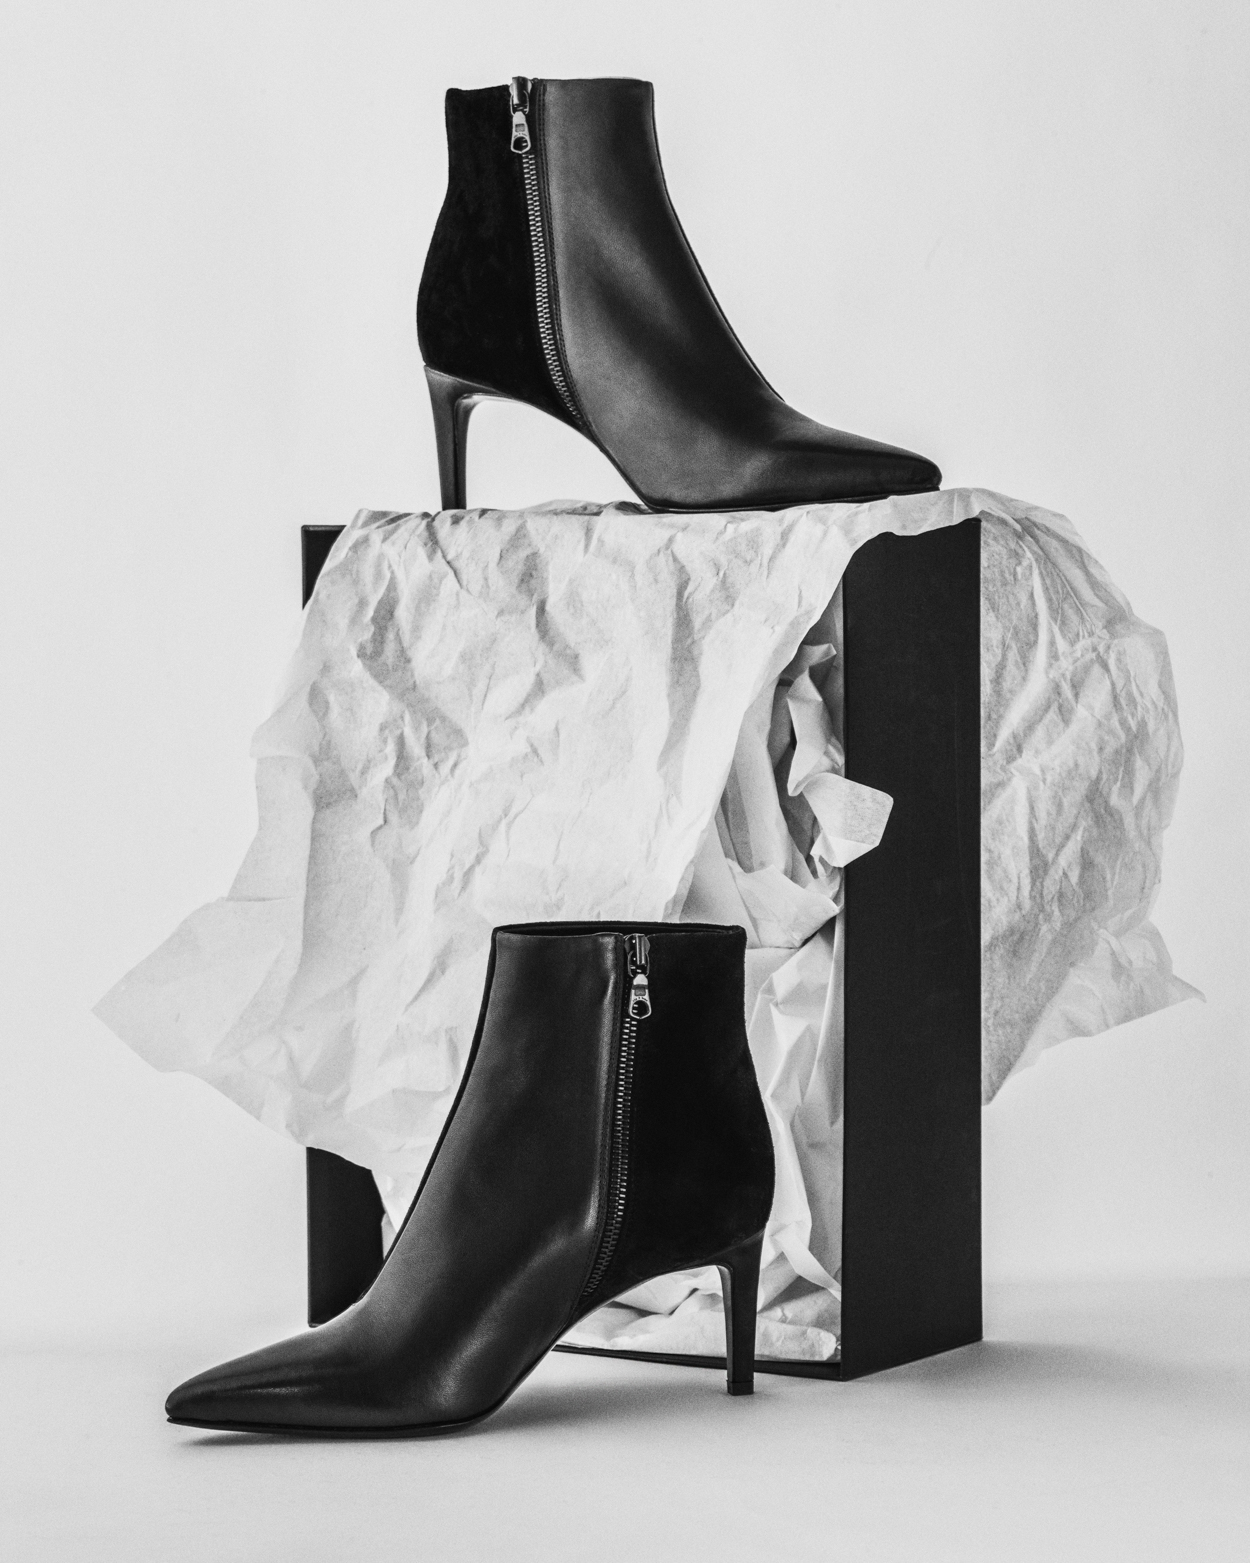 Los Angeles Still Life Photographer - Boots by Ray Kachatorian